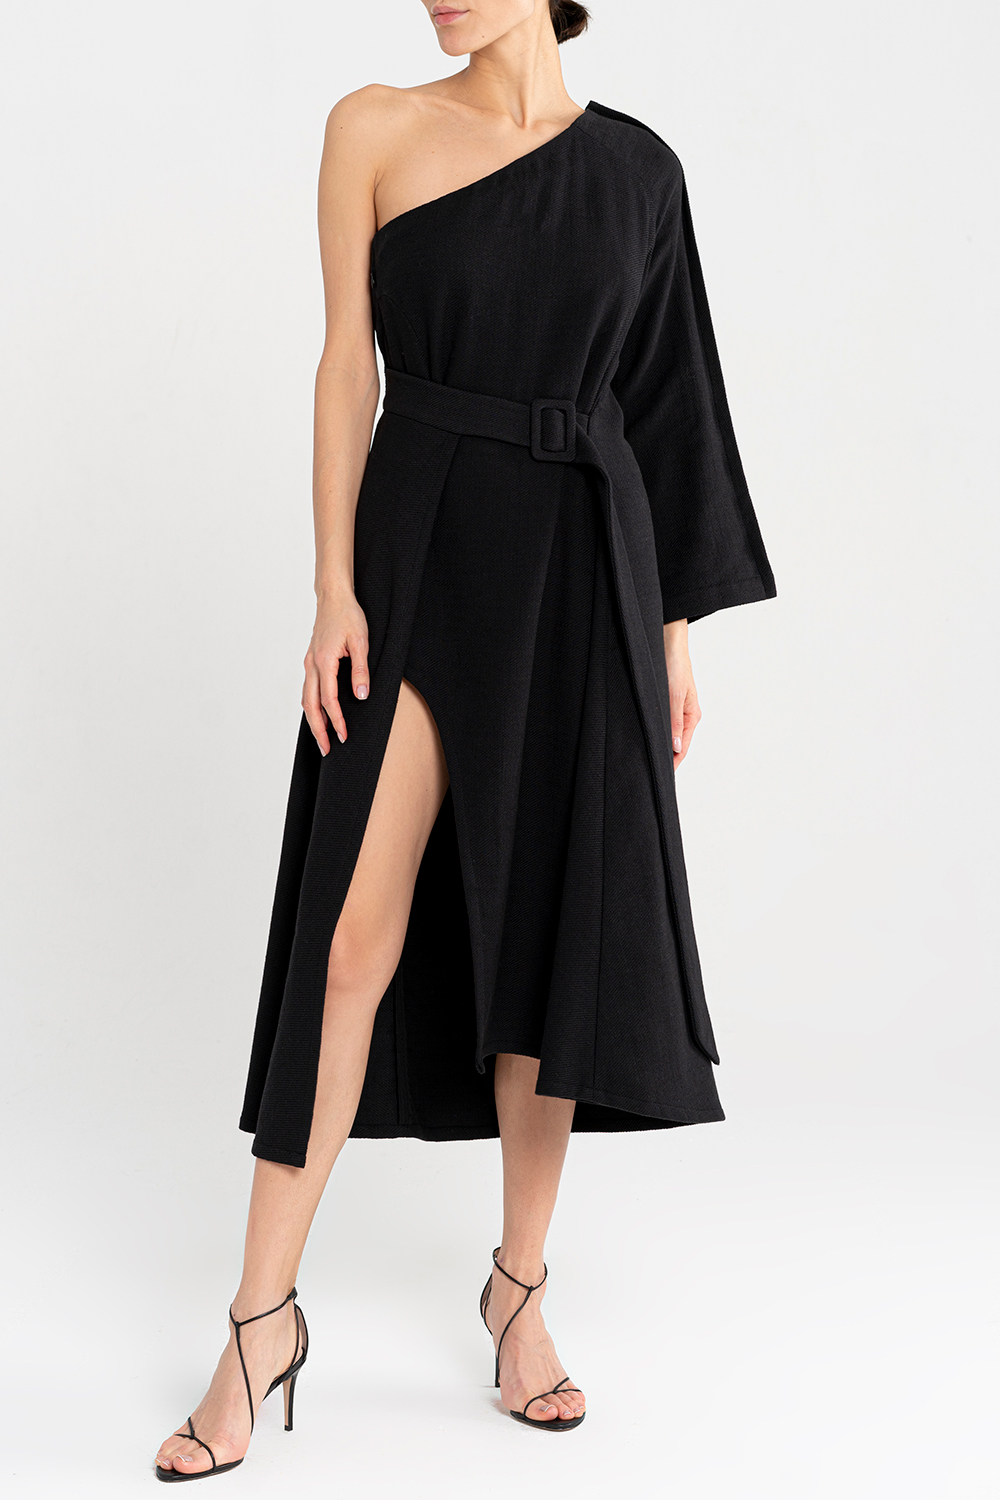 Textured cotton one-shoulder dress